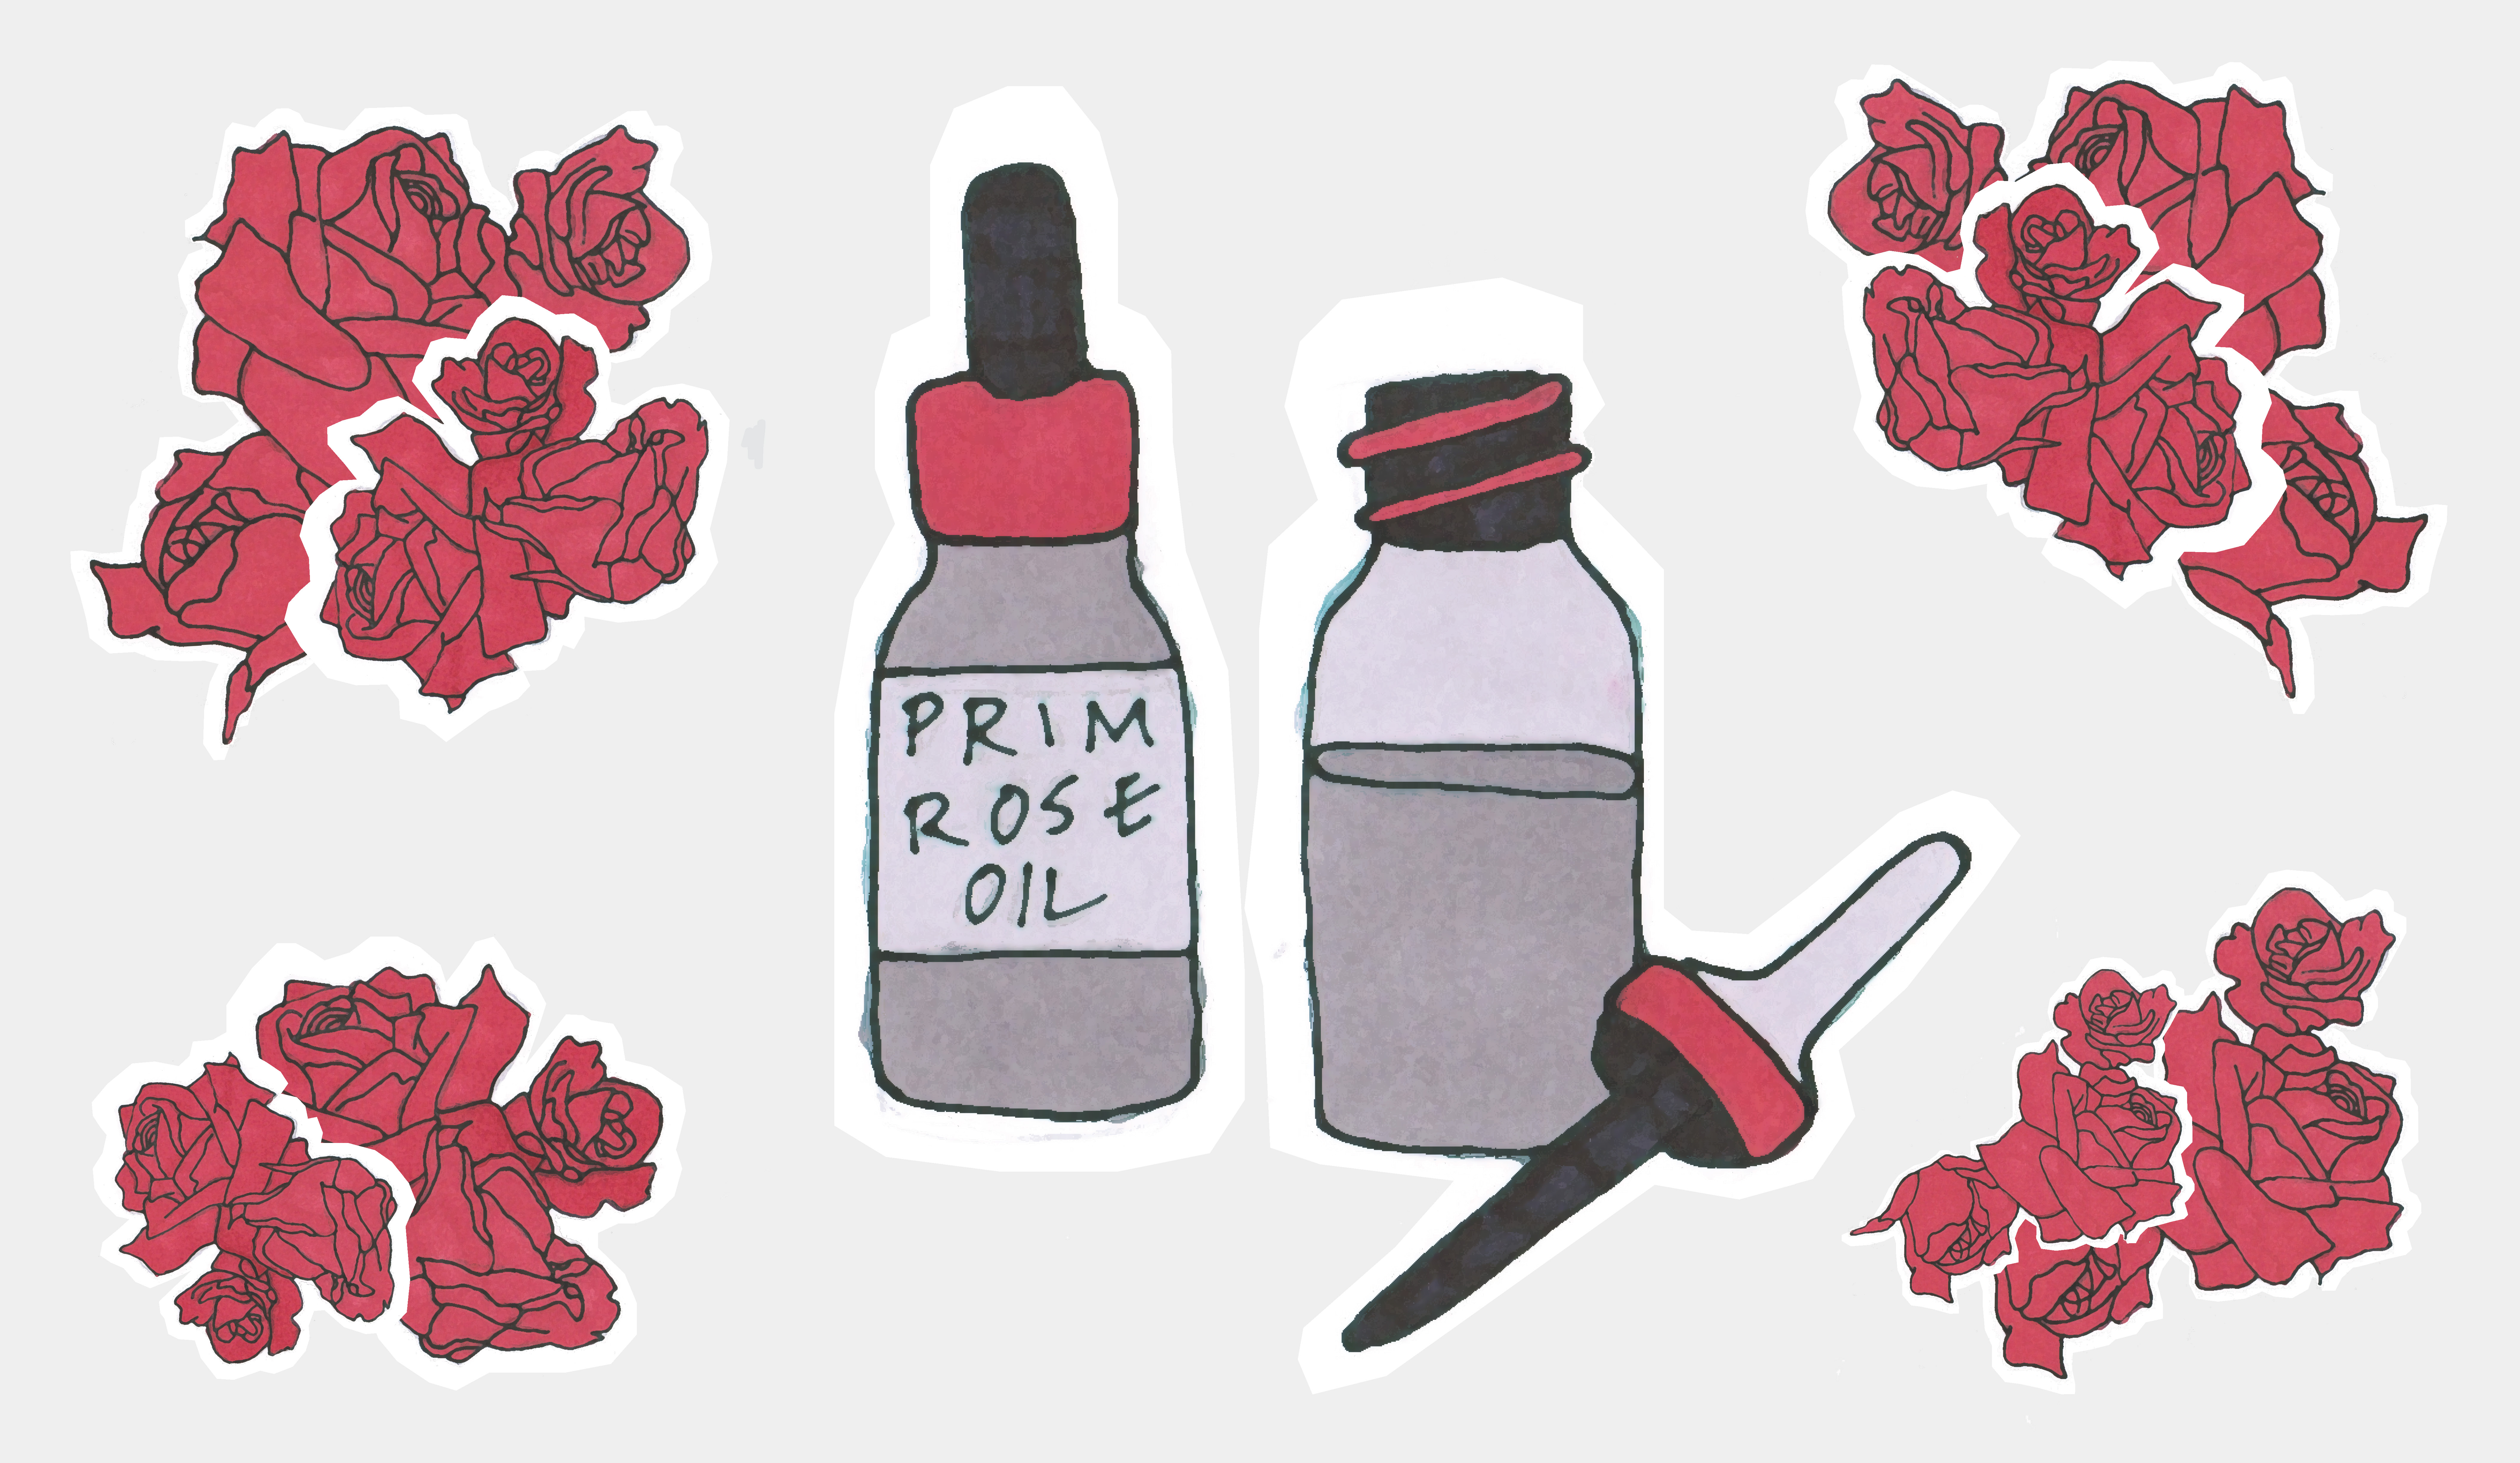 2 Essential Oils You Need: Primrose Oil & Clary Sage Save All